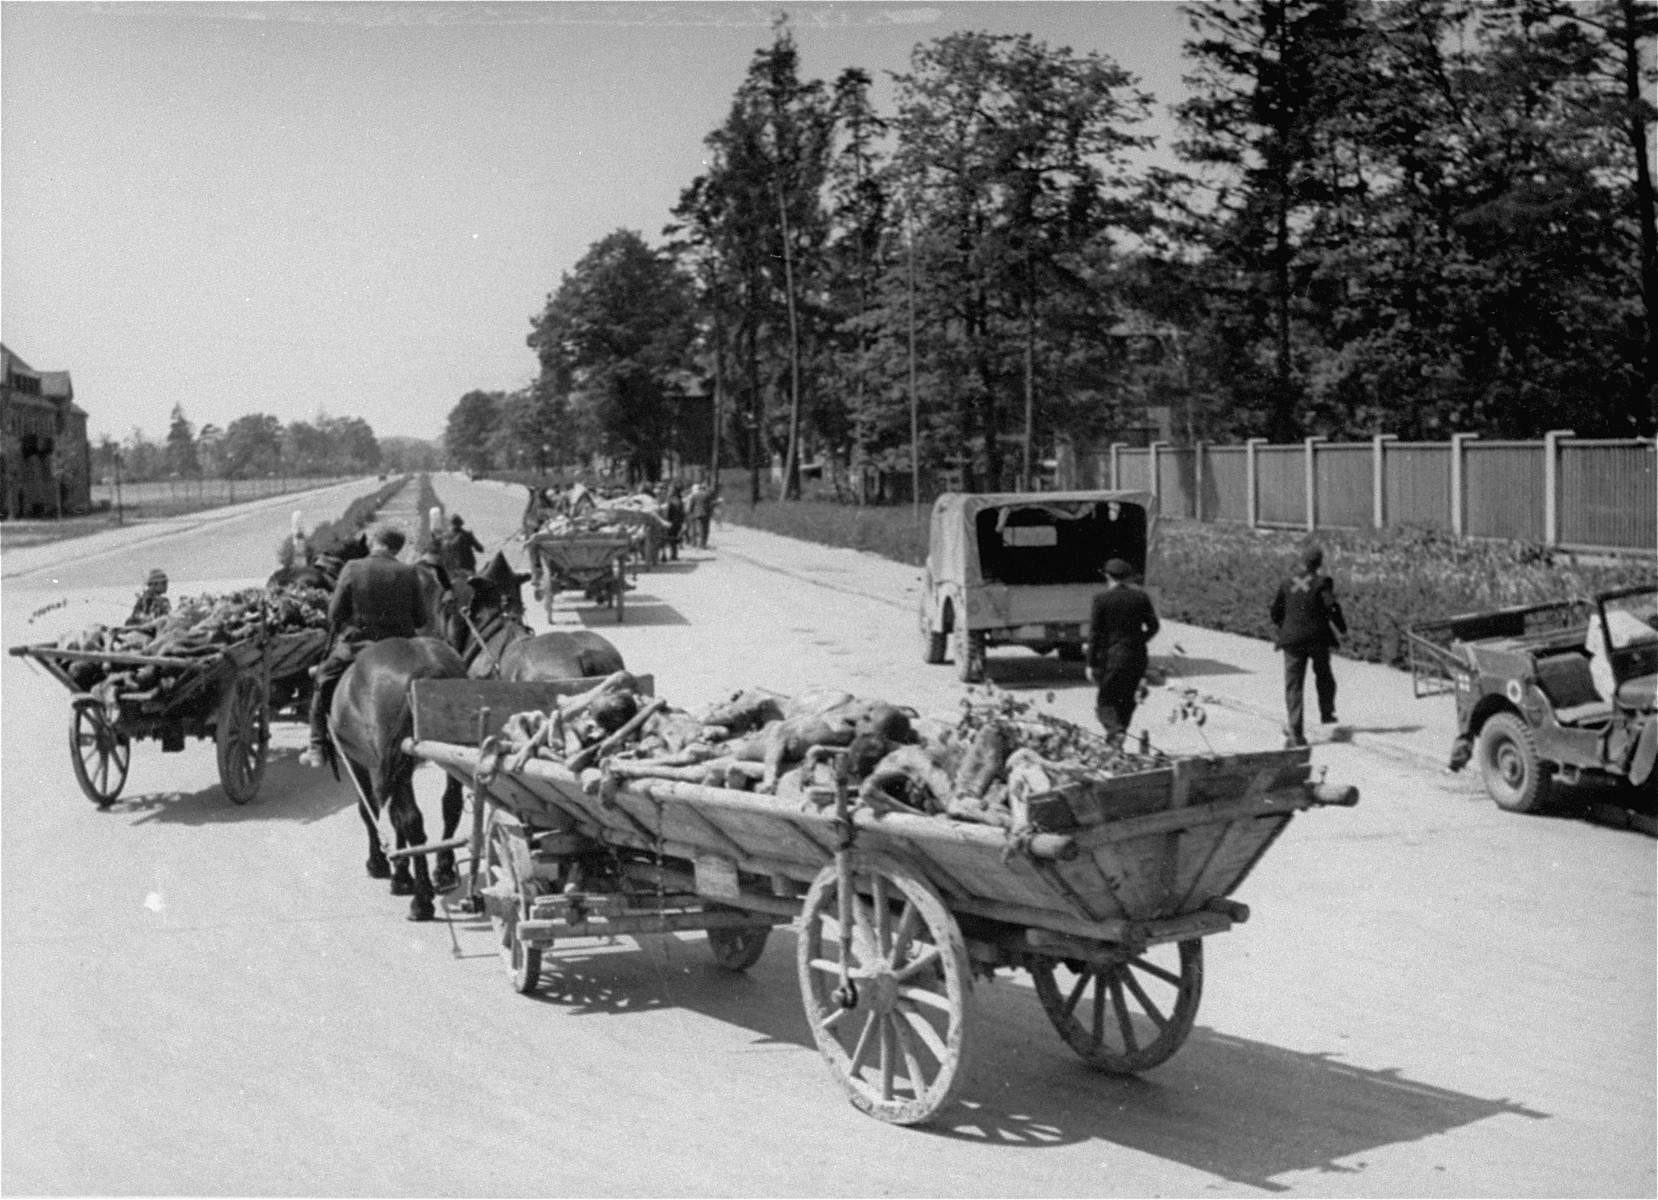 Carts laden with corpses leave the Dachau concentration camp on route to a burial site.  Allied authorities required local farmers to drive their loaded carts through the town of Dachau as an education for the inhabitants.